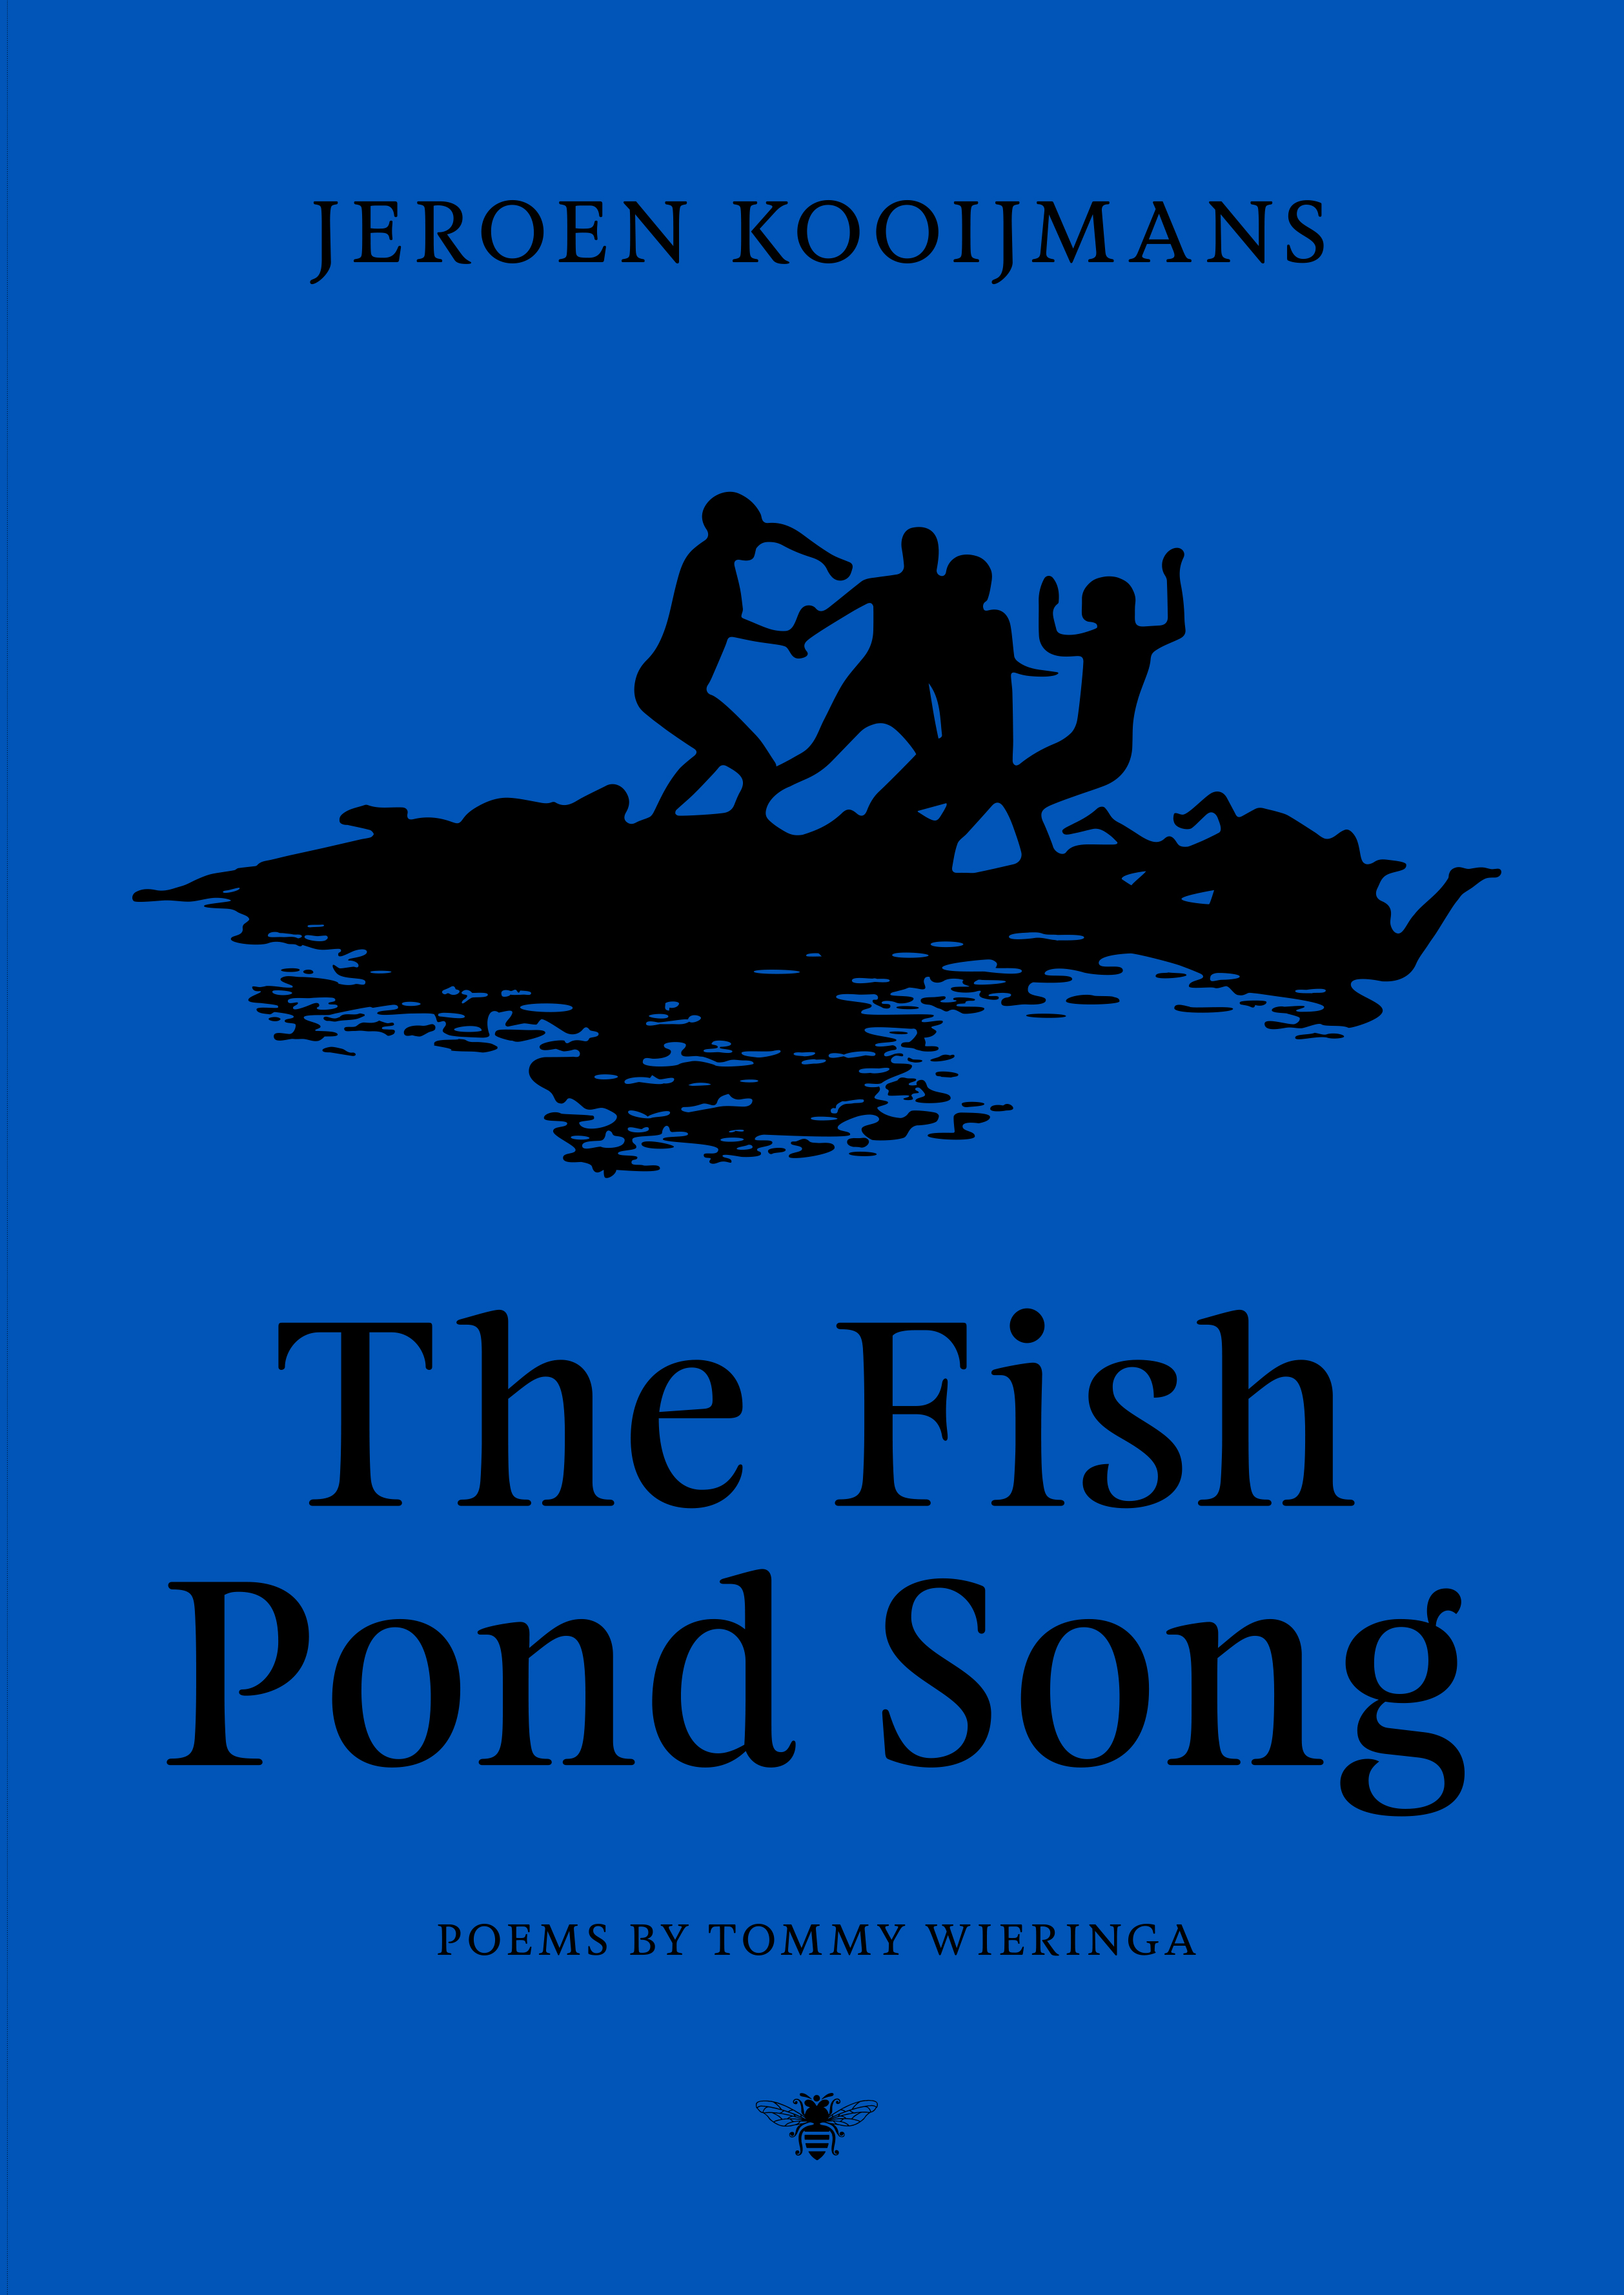 The Fish Pond Song – Jeroen Kooijmans&Tommy Wieringa